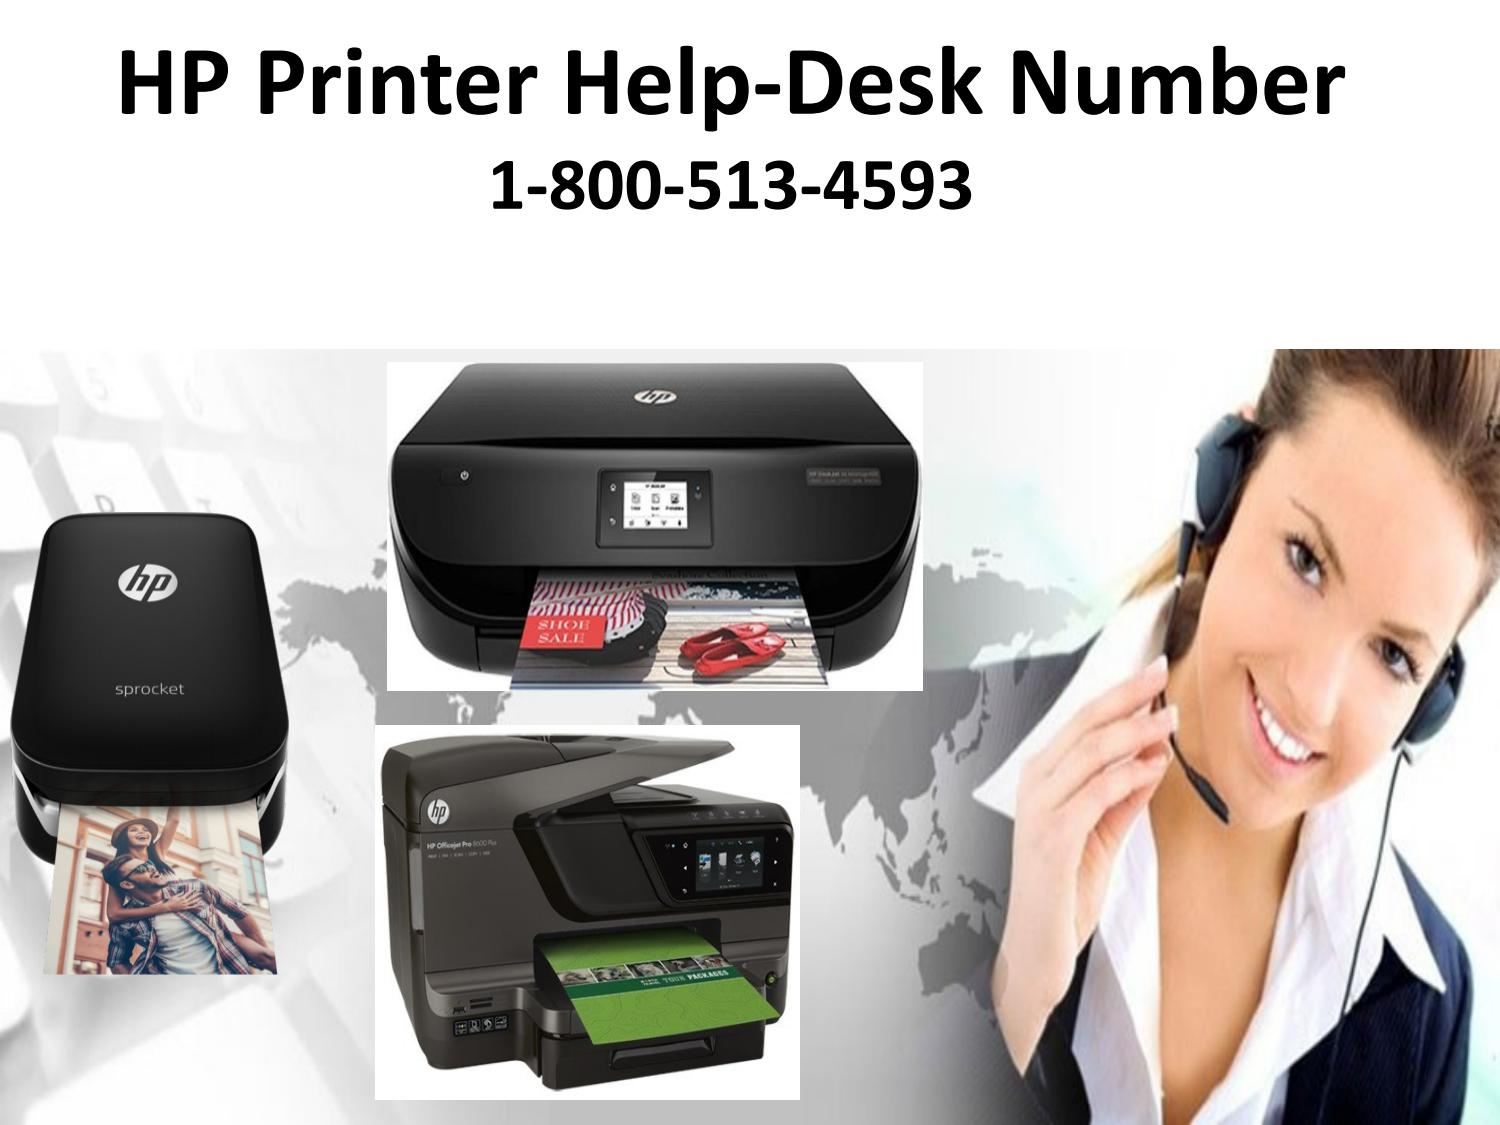 Charmant HP Printer Help Desk Number 1 800 513 4593, Helpline By Hp ...